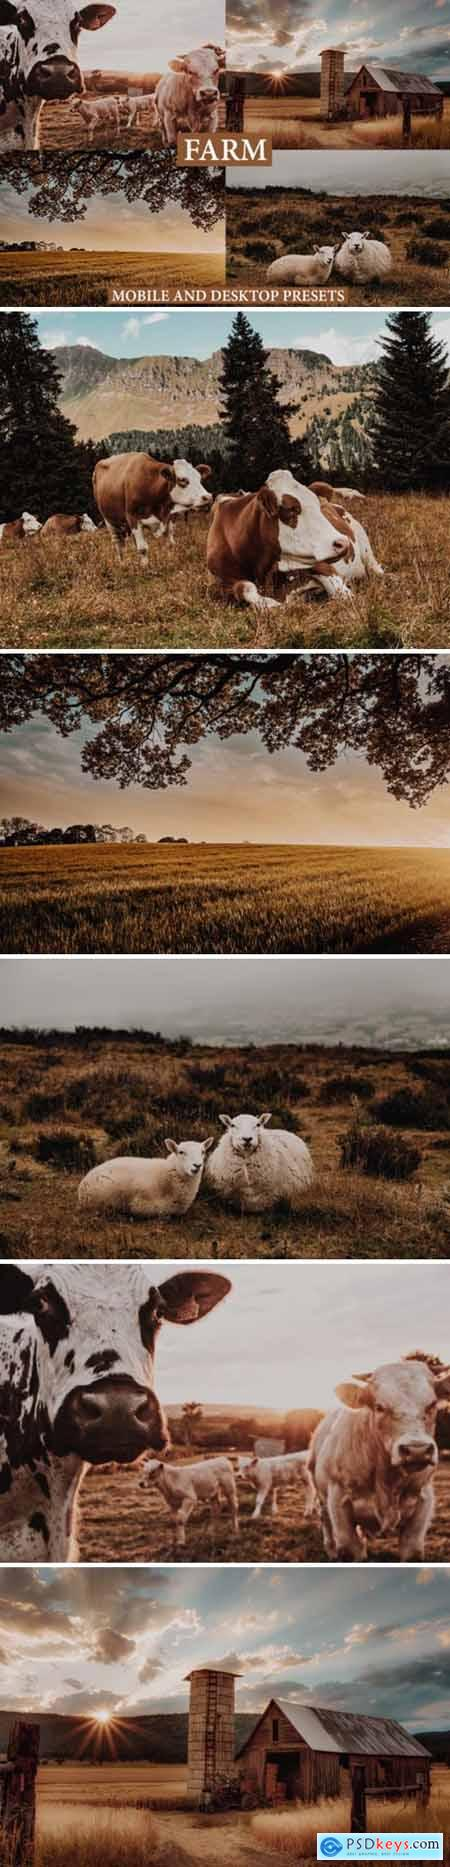 Cinematic Farm Mobile & Desktop Presets 4127575